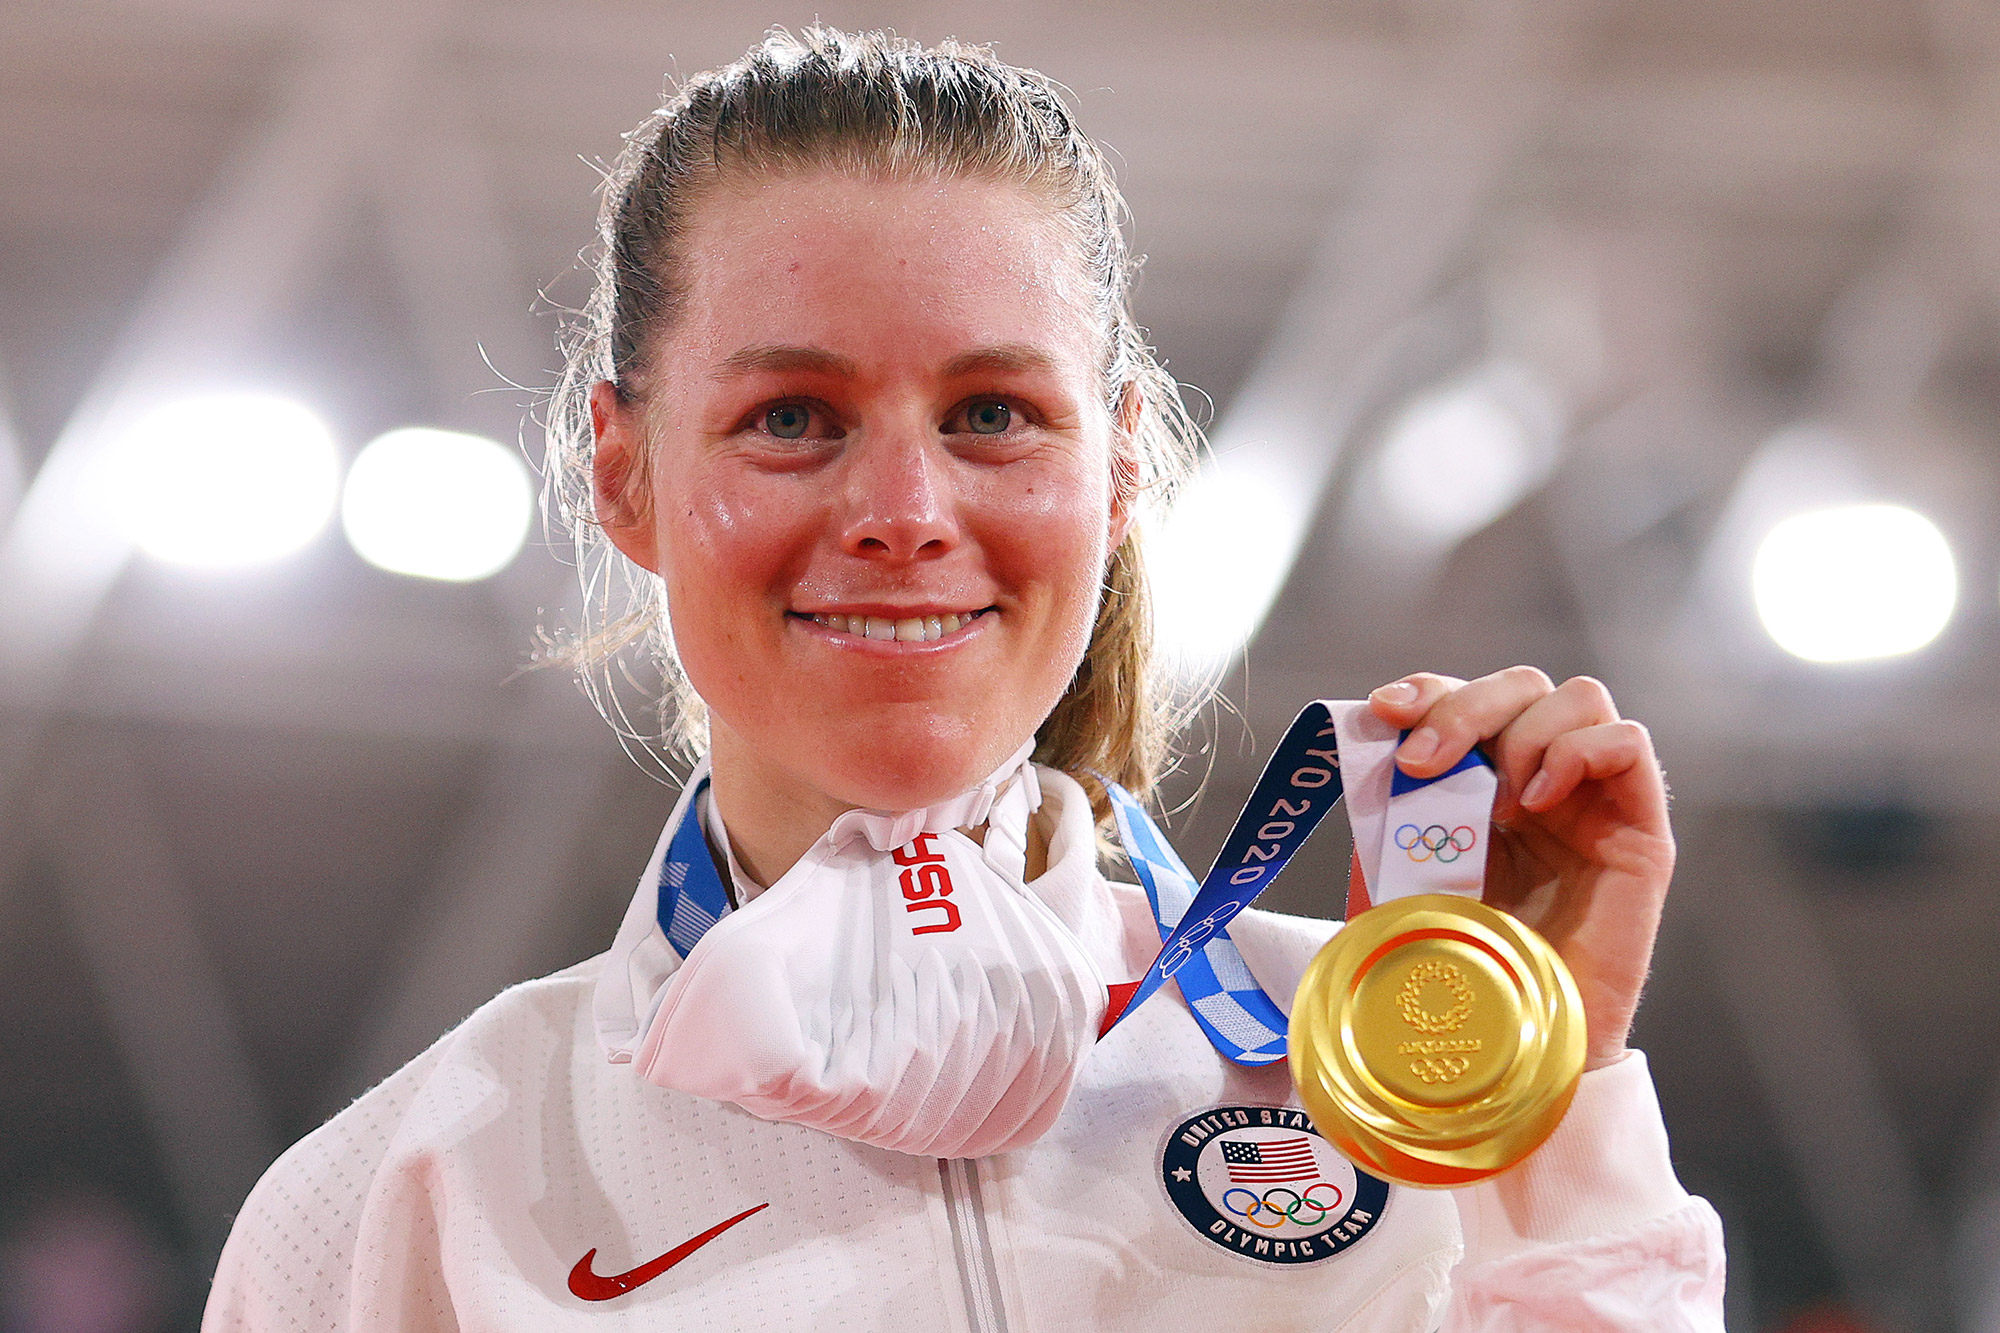 Gold medalist Jennifer Valente of Team United States, poses during the medal ceremony after the Women's Omnium finals of the track cycling on day sixteen of the Tokyo 2020 Olympic Games at Izu Velodrome on August 08, 2021 in Izu, Shizuoka, Japan